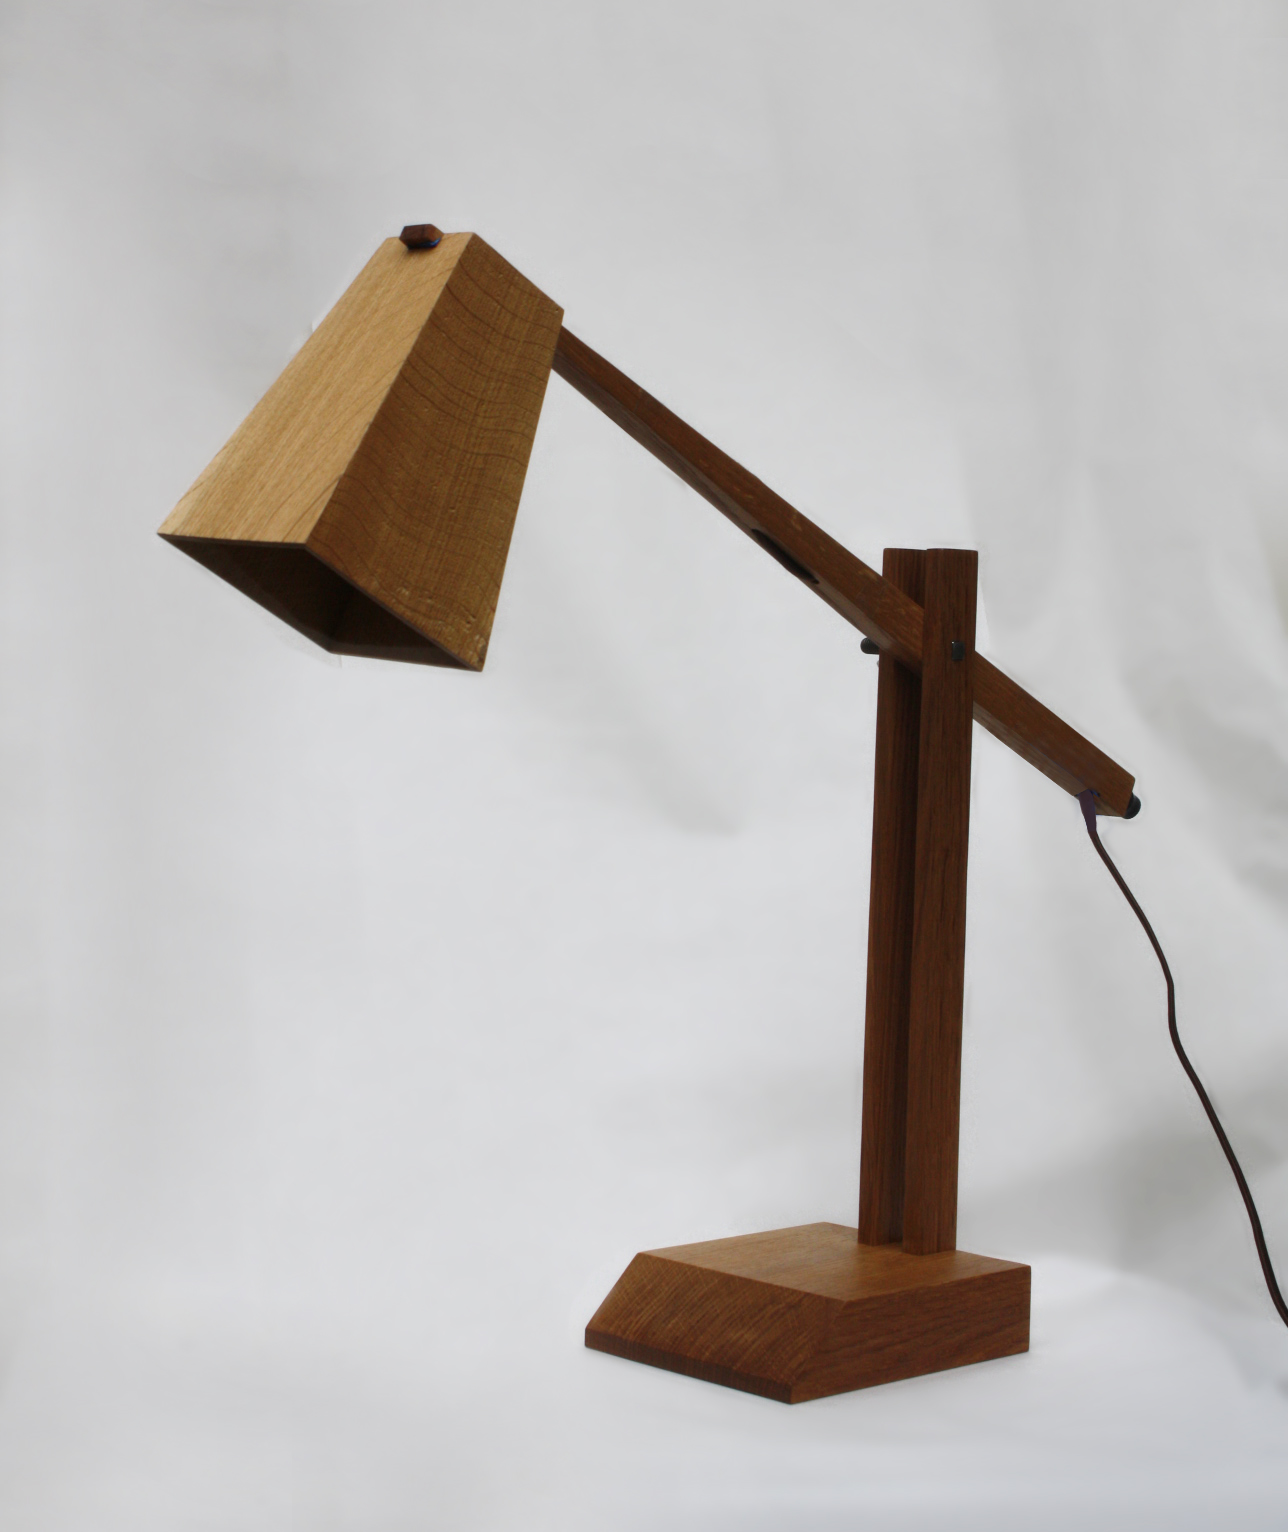 Making wooden table lamps quick woodworking projects - Design on wooden ...